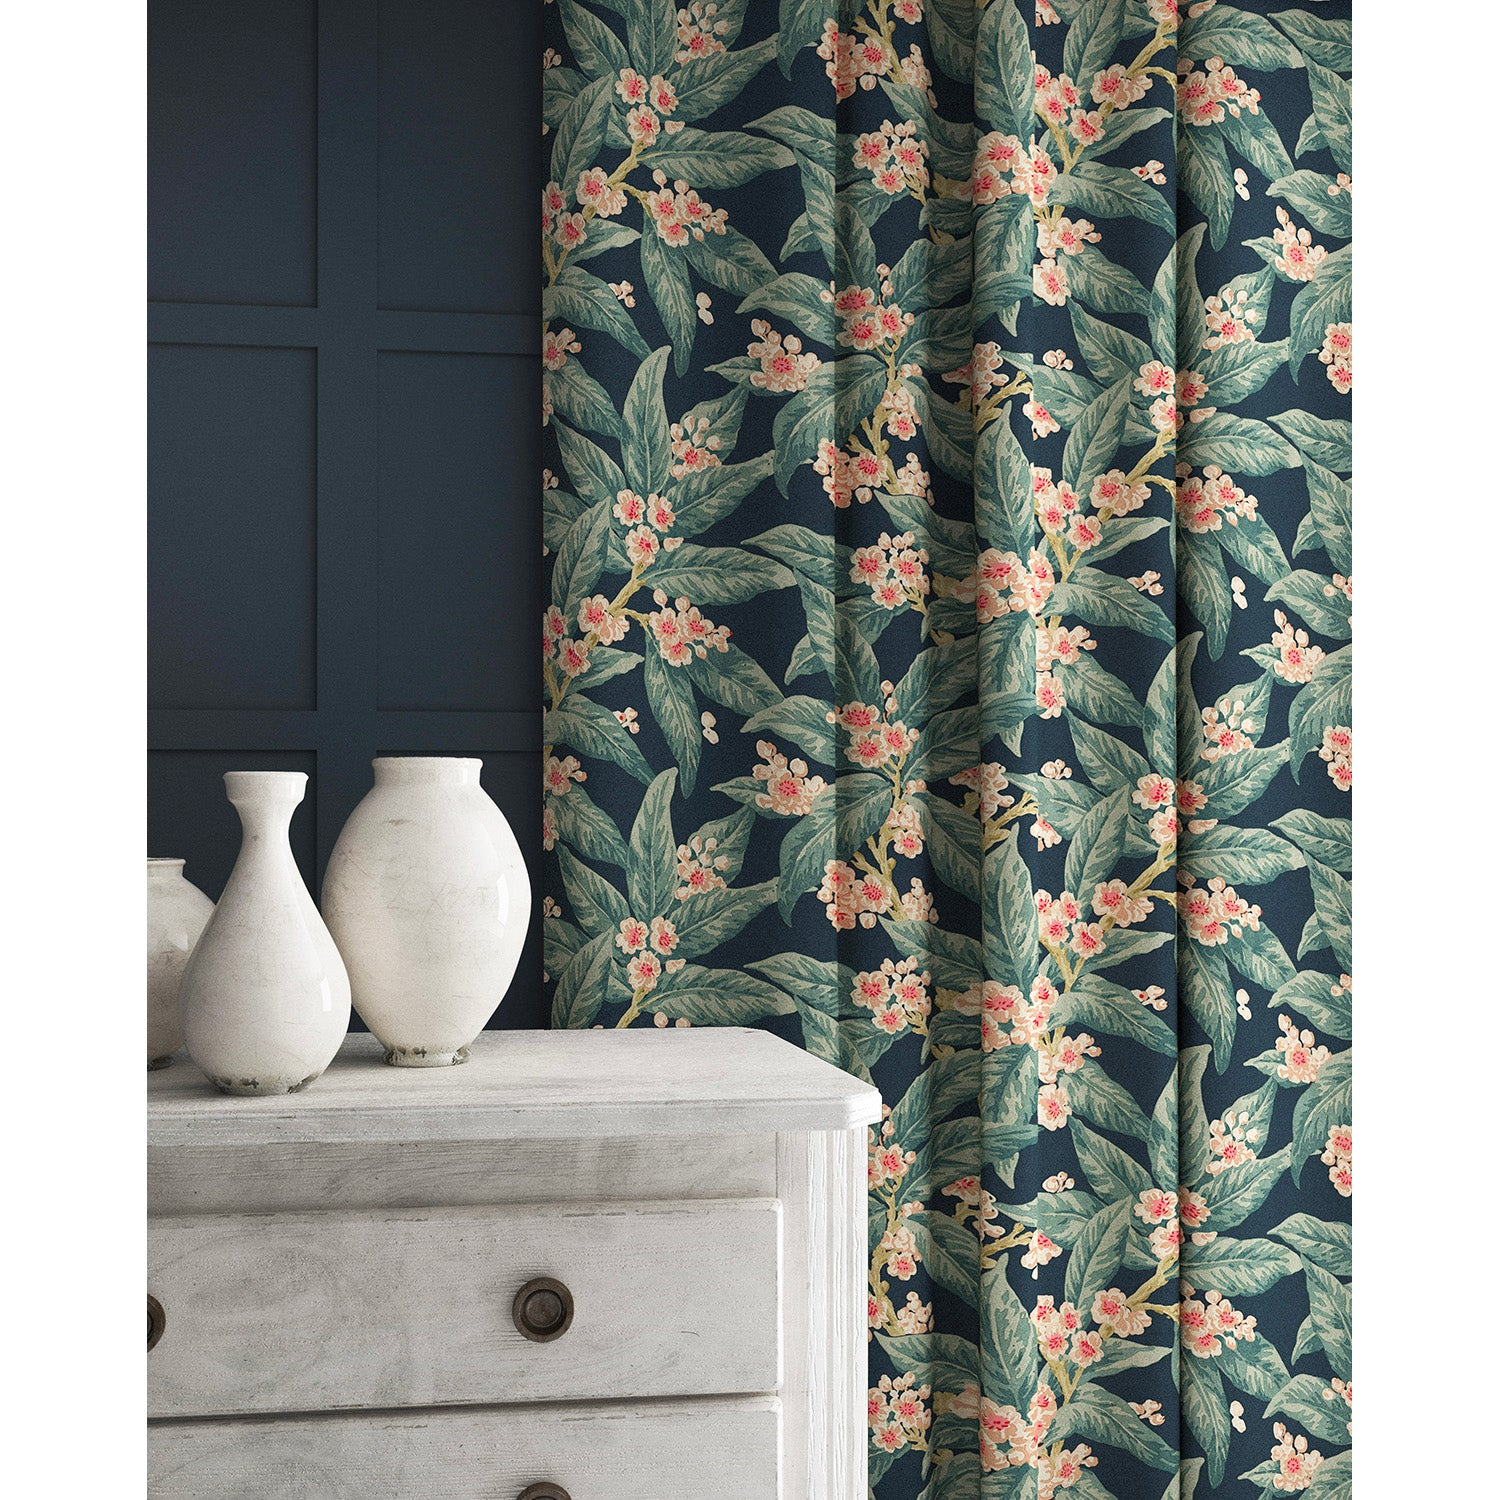 Velvet curtains in a pink and blue coloured velvet fabric with a leaf and blossom design and stain resistant finish